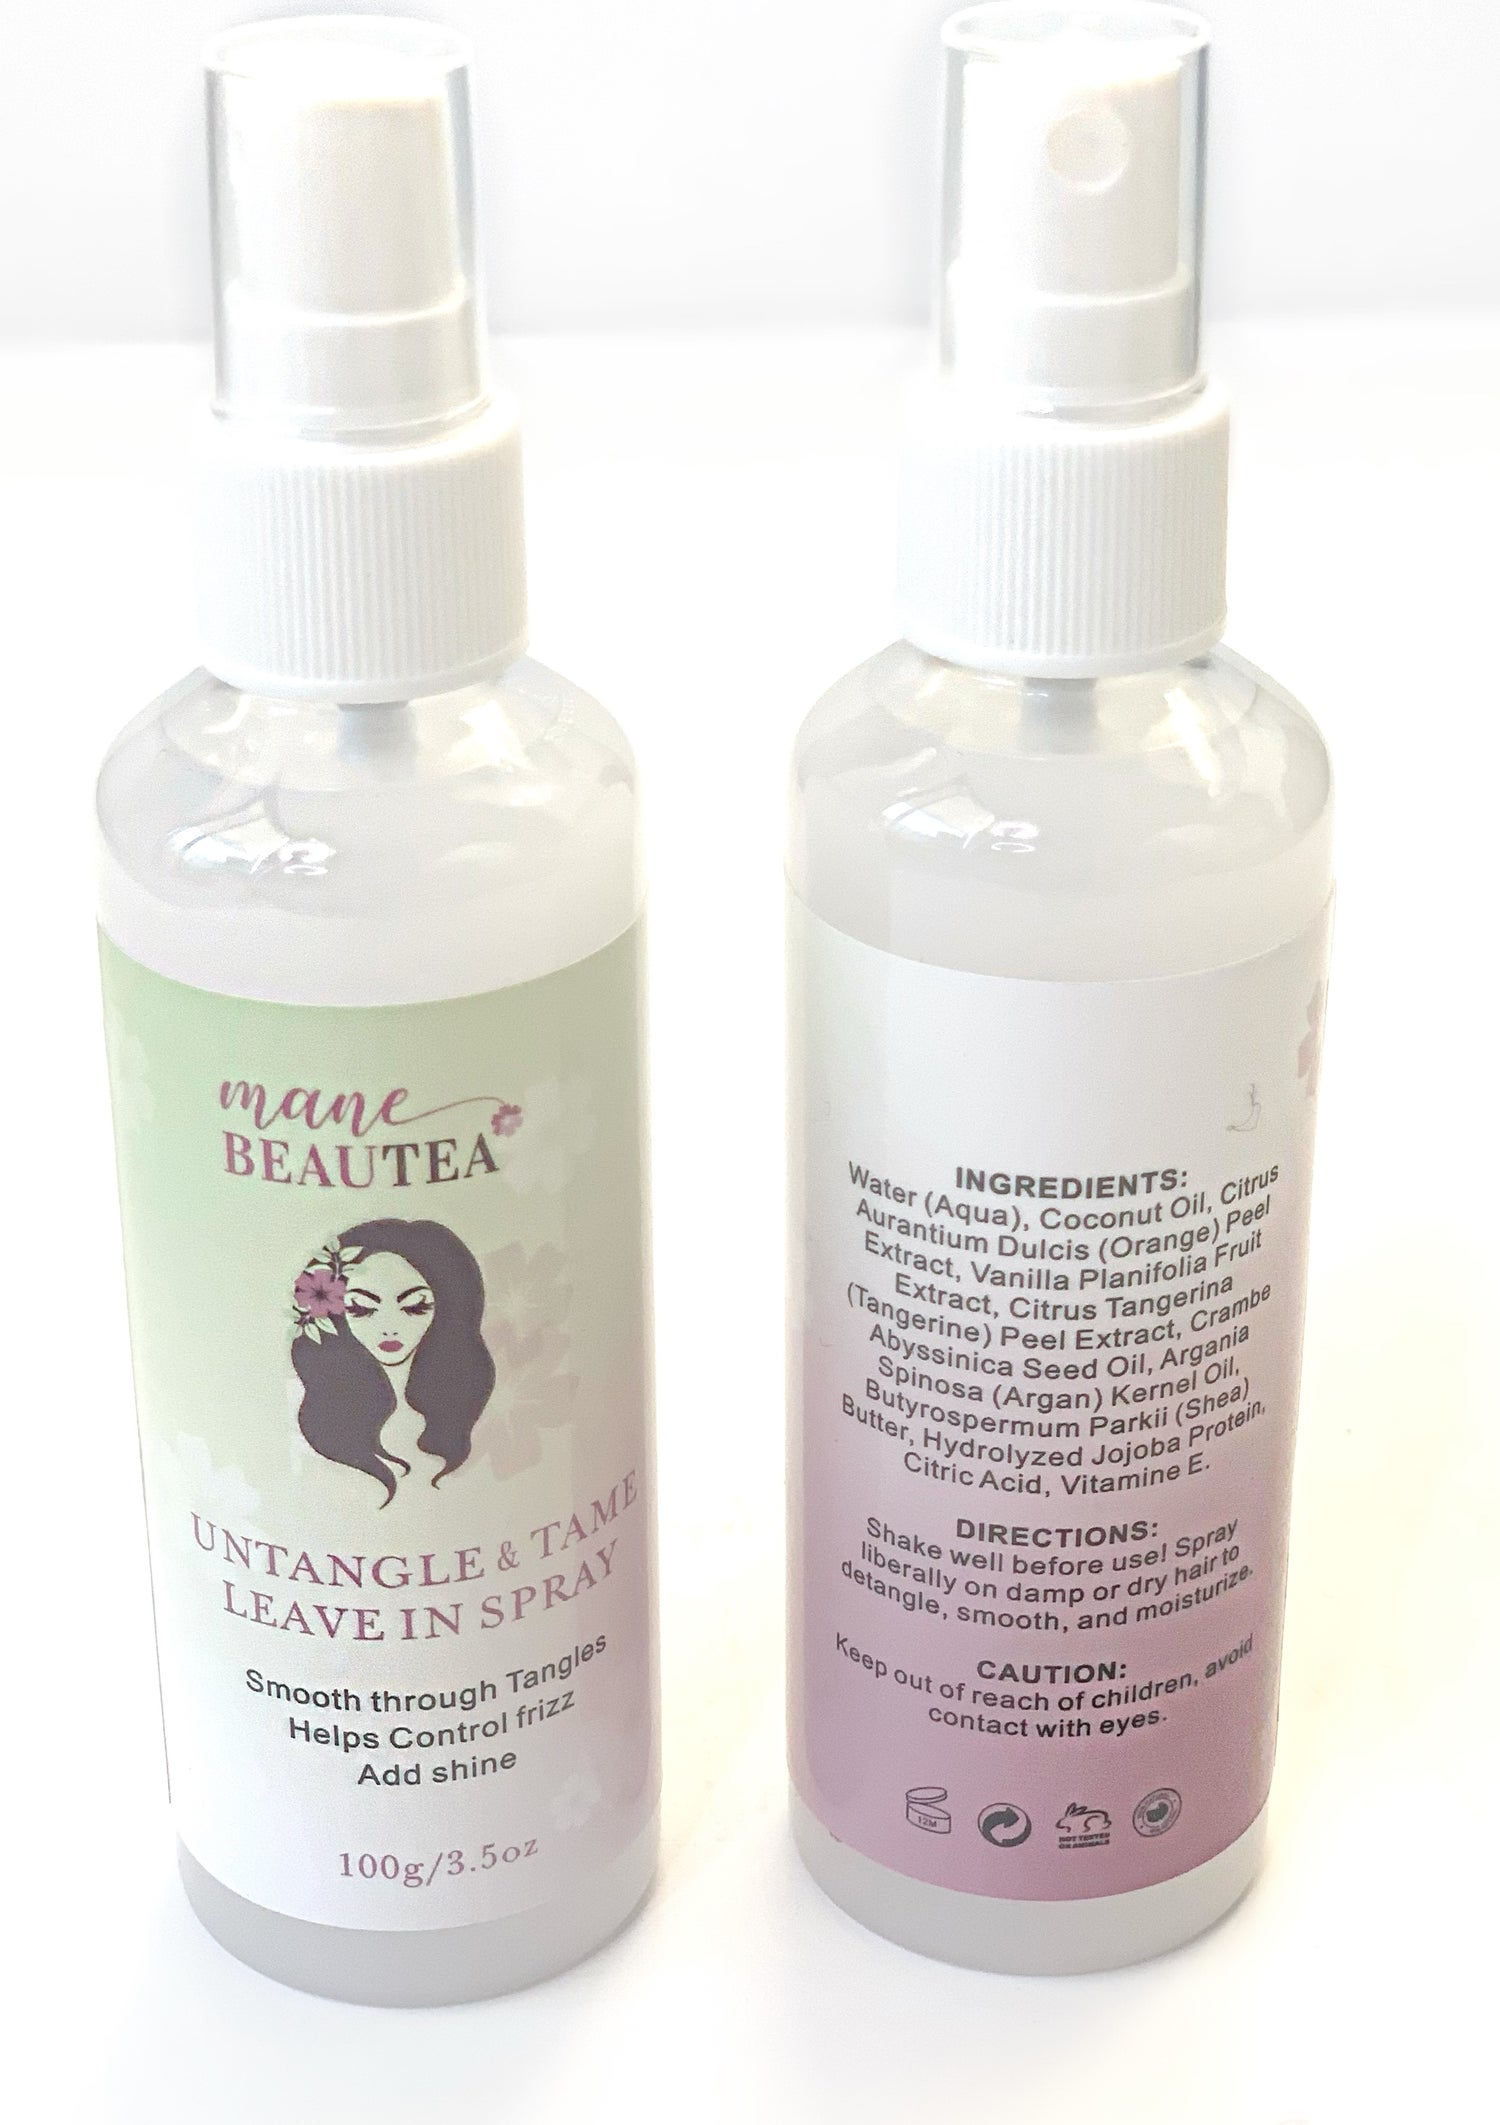 Image of UnTangle & Tame leave-in conditioner